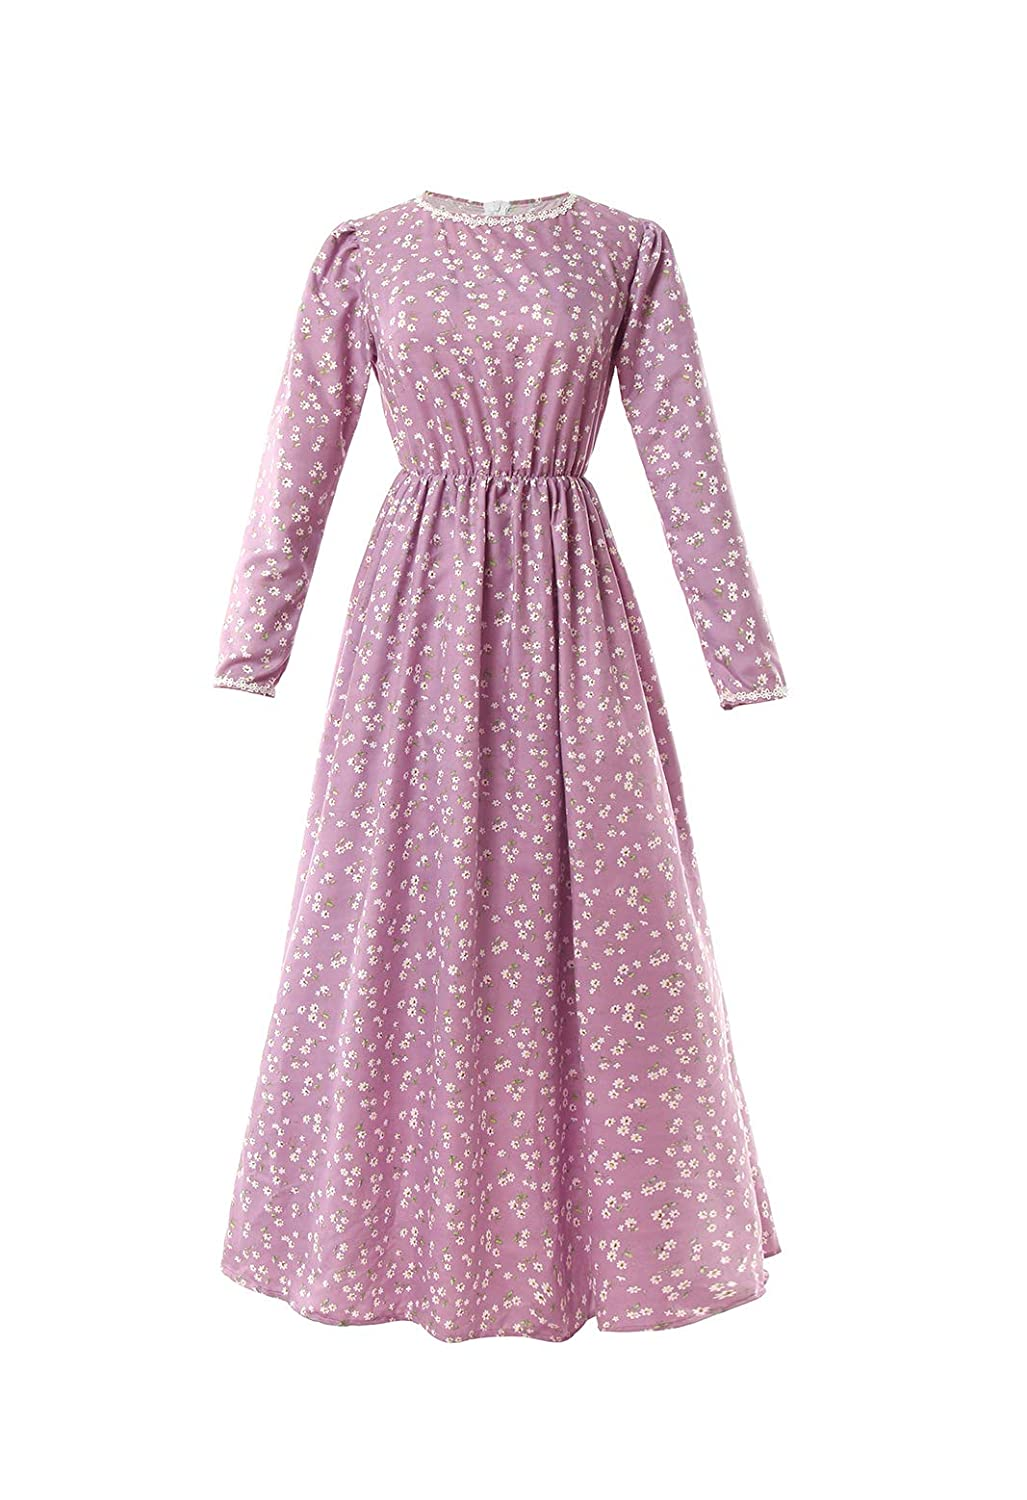 Cottagecore Dresses Aesthetic, Granny, Vintage  Dress Deluxe Colonial Dress Laura Ingalls Costume ROLECOS Pioneer Women Costume Floral Prairie $35.99 AT vintagedancer.com